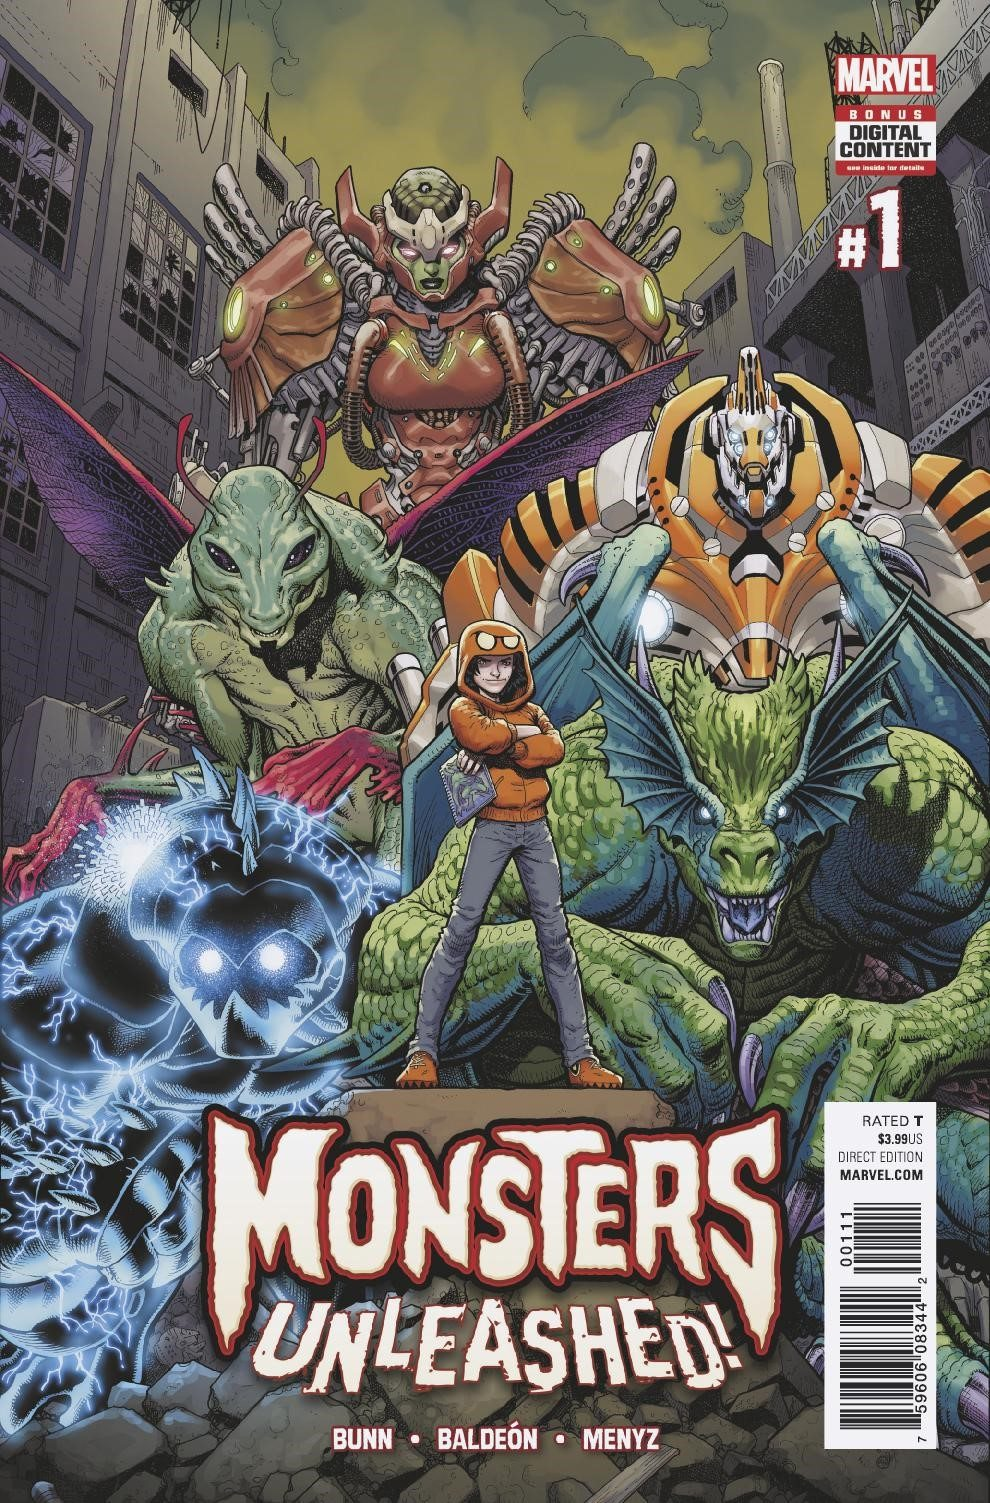 Meet Marvel's Newest Heroes – Your First Look at 'Monsters Unleashed' #1!